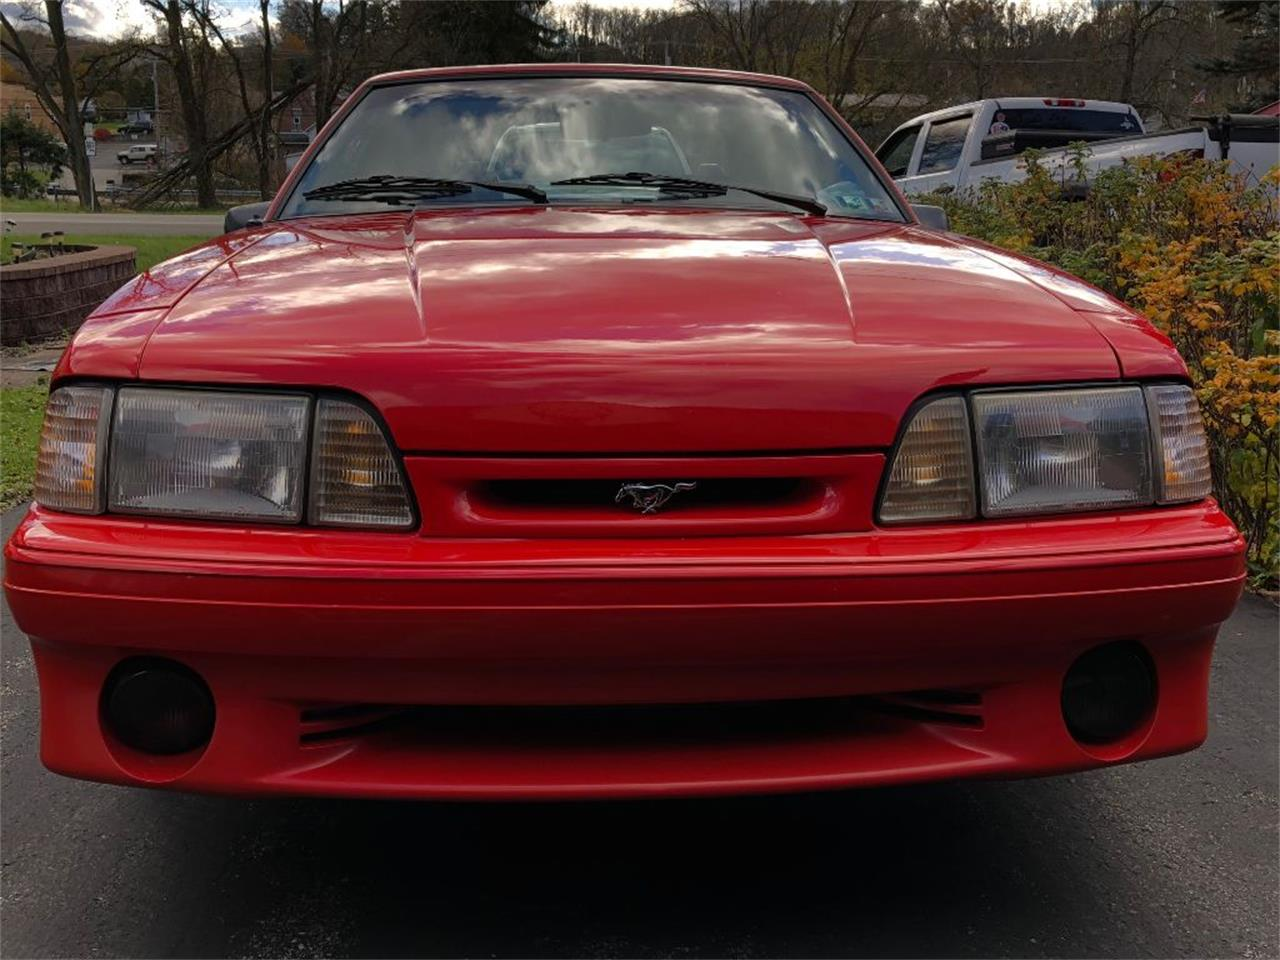 Large Picture of '93 Mustang Cobra located in Latrobe Pennsylvania - $22,900.00 Offered by a Private Seller - POA0